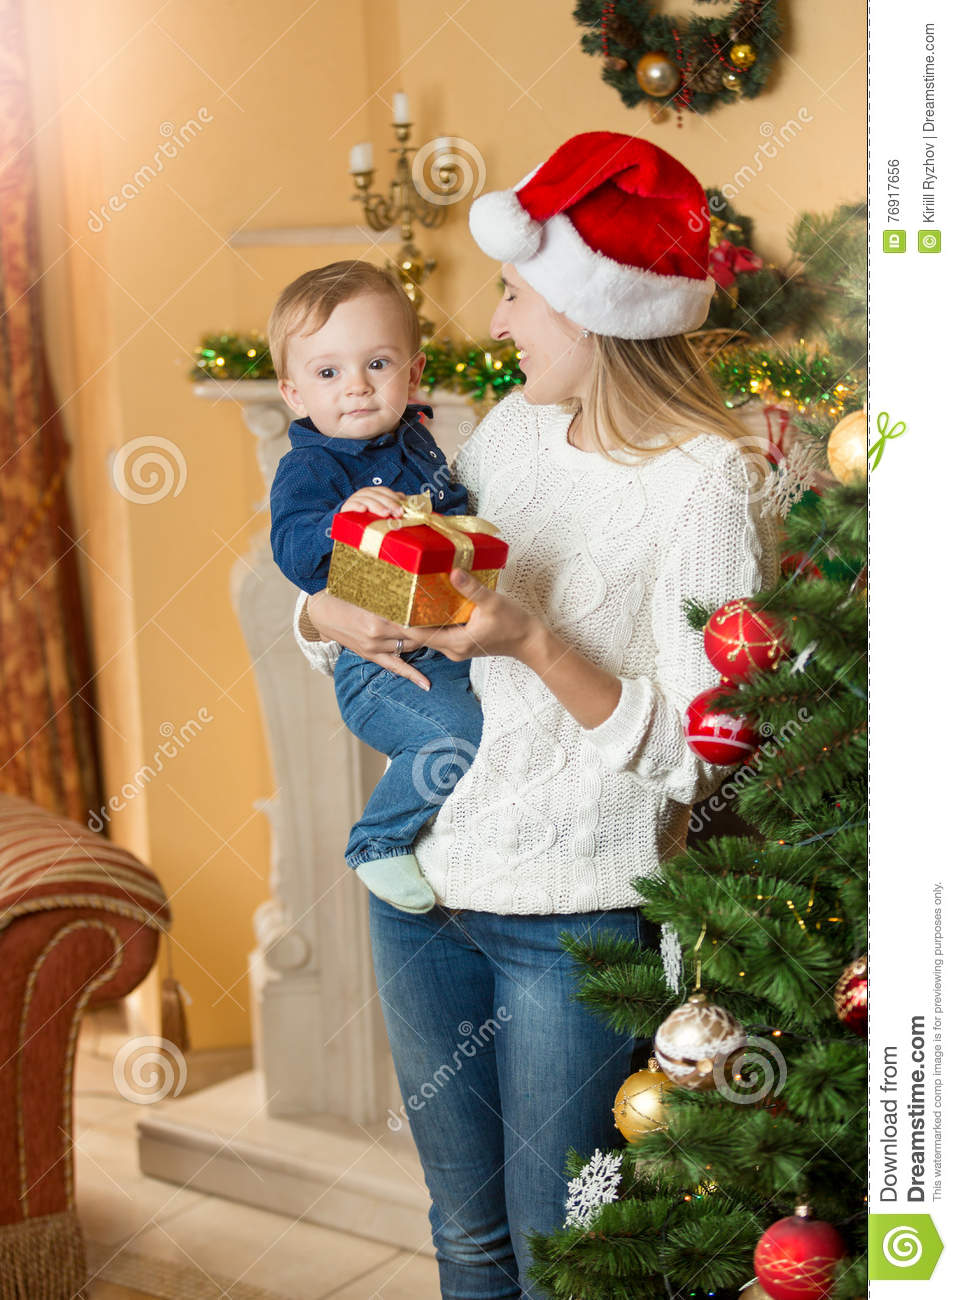 portrait of happy mother giving present to her baby son on chris